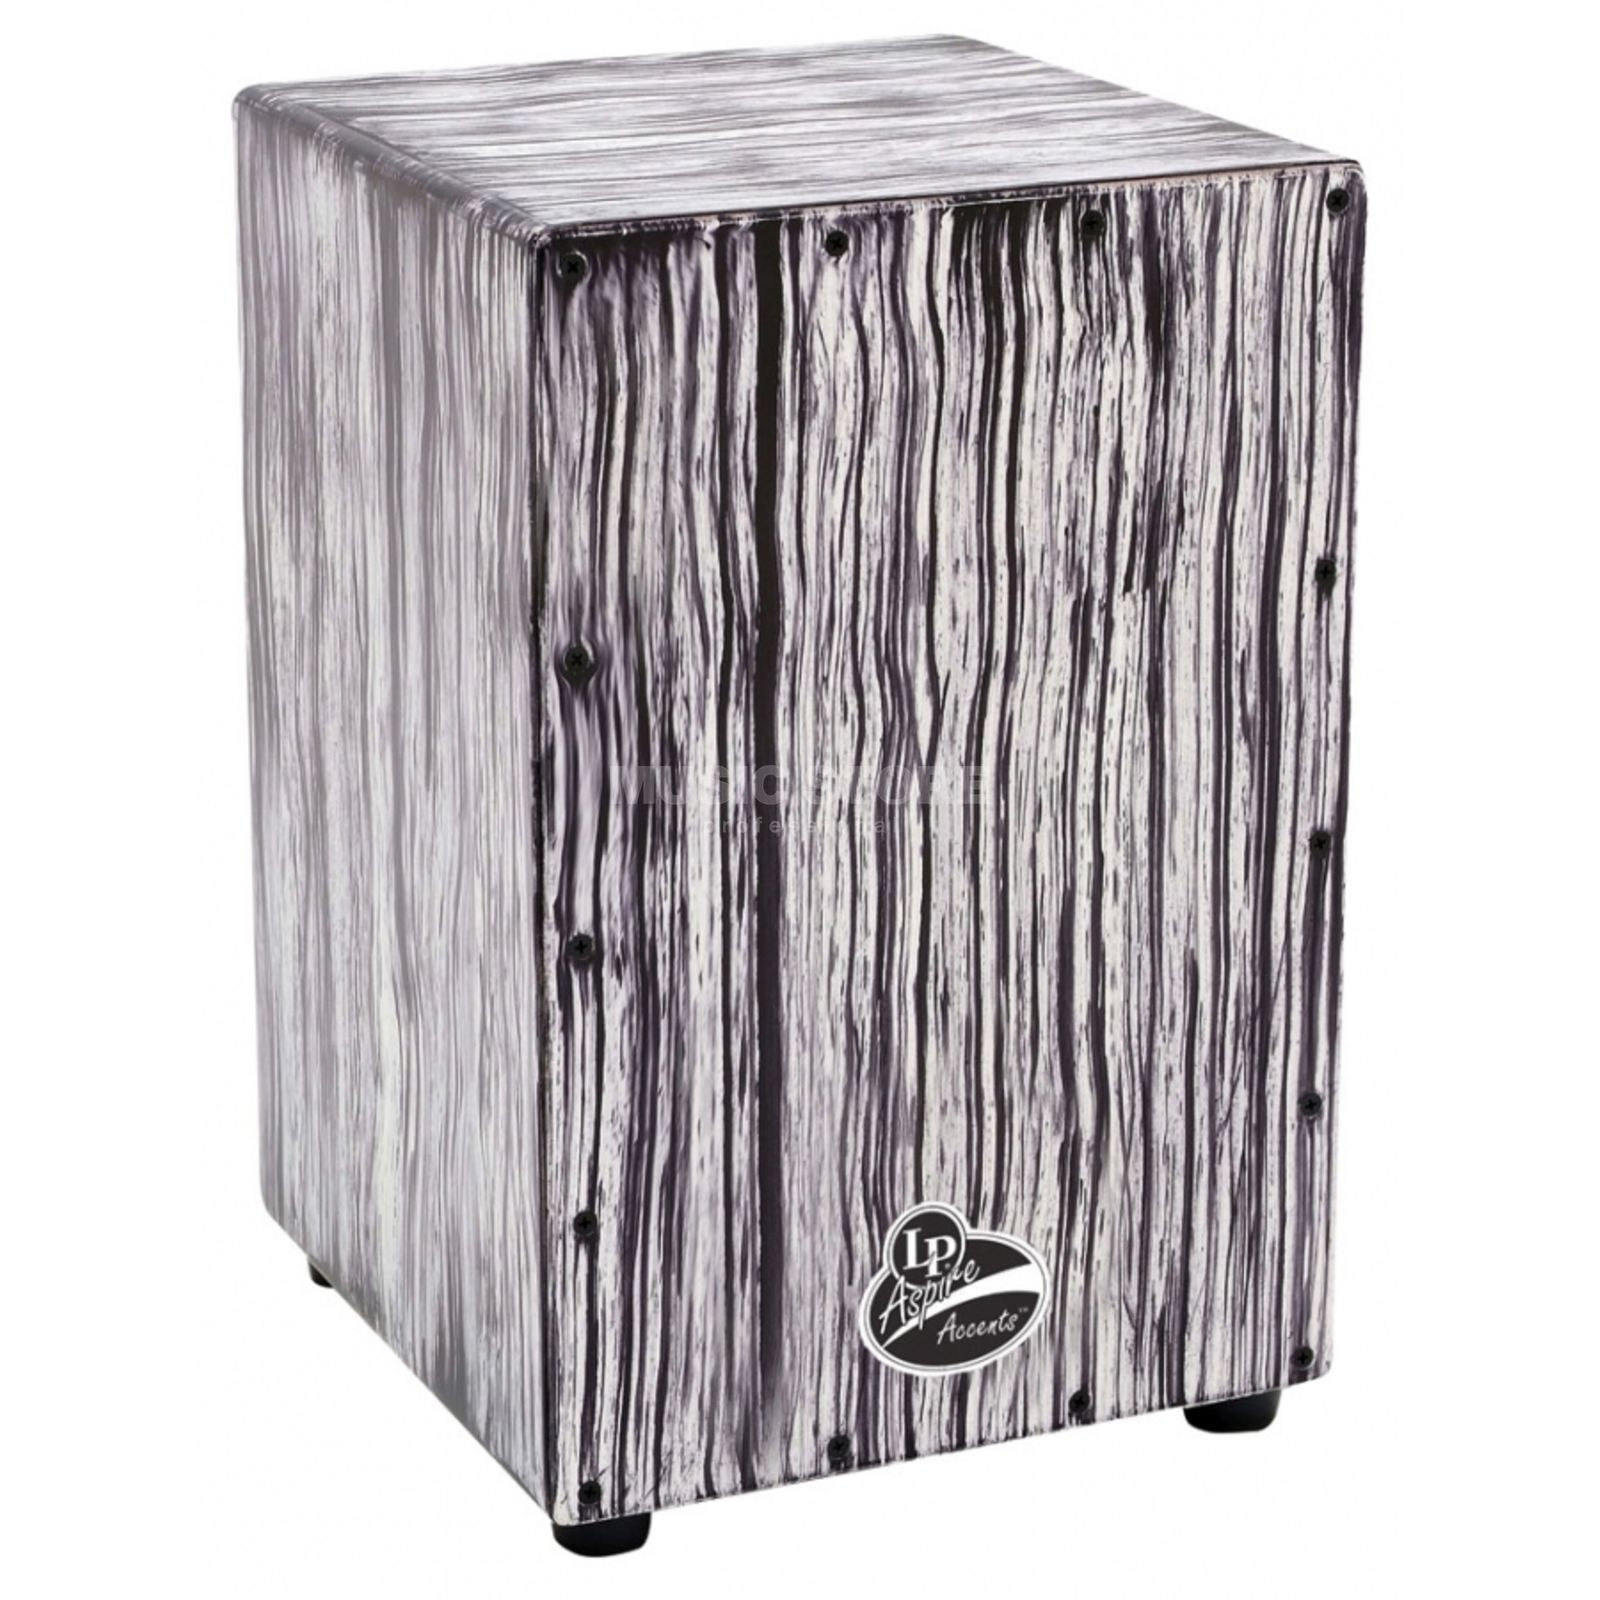 Latin Percussion Cajon Aspire Accent LPA1332, White Streak Produktbild